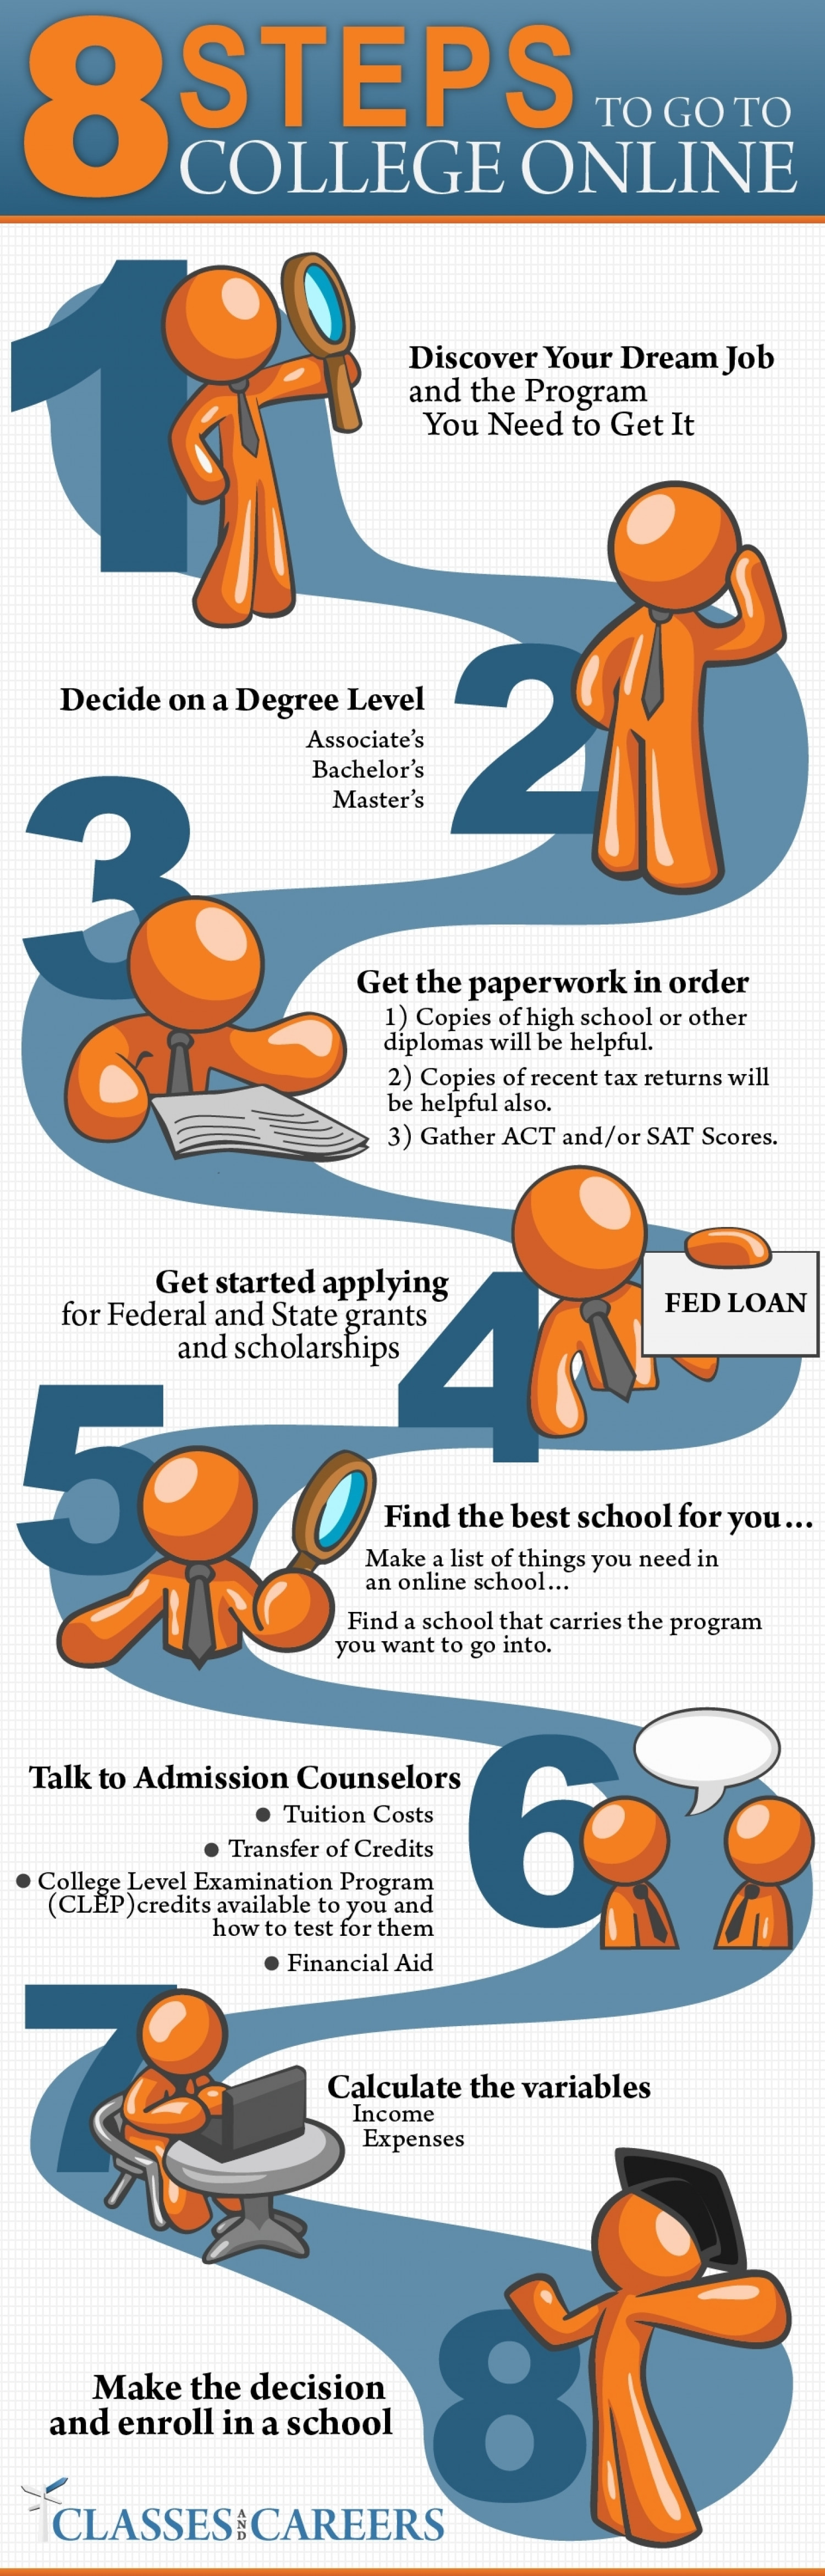 8 Steps to Go to College Online Infographic